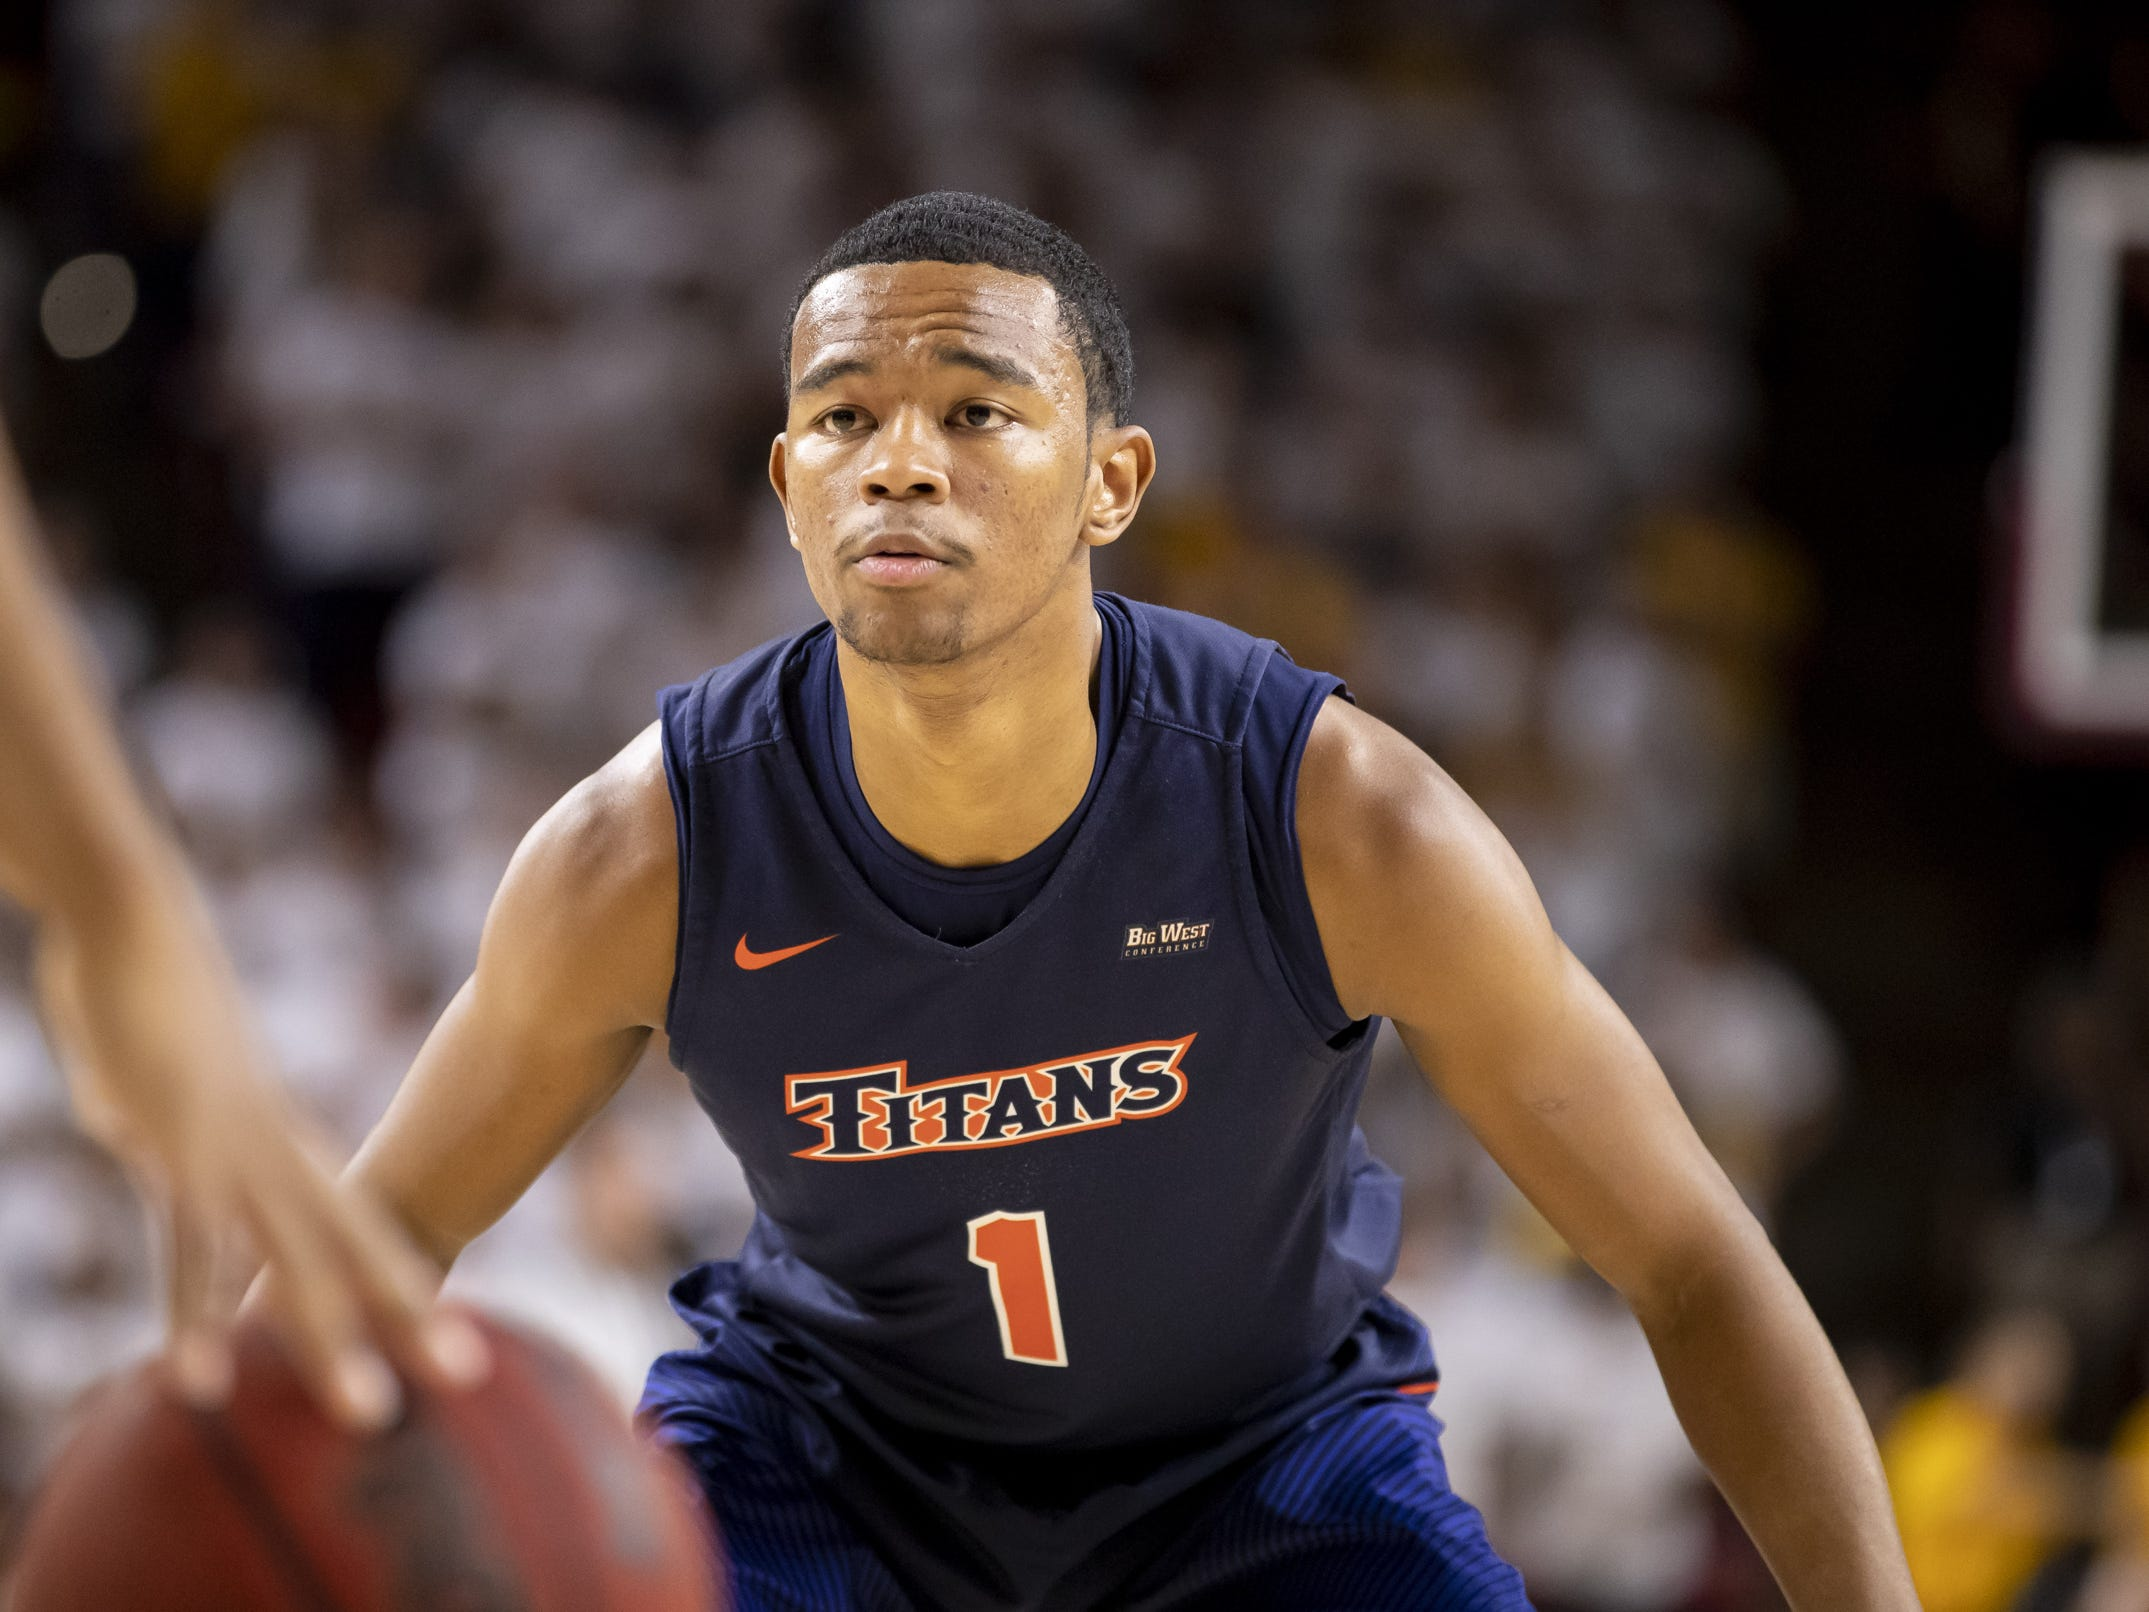 Guard Jamal Smith (1) of the Cal State Fullerton Titans during the game against the Arizona State Sun Devils at Wells Fargo Arena on Tuesday, November 6, 2018 in Tempe, Arizona.